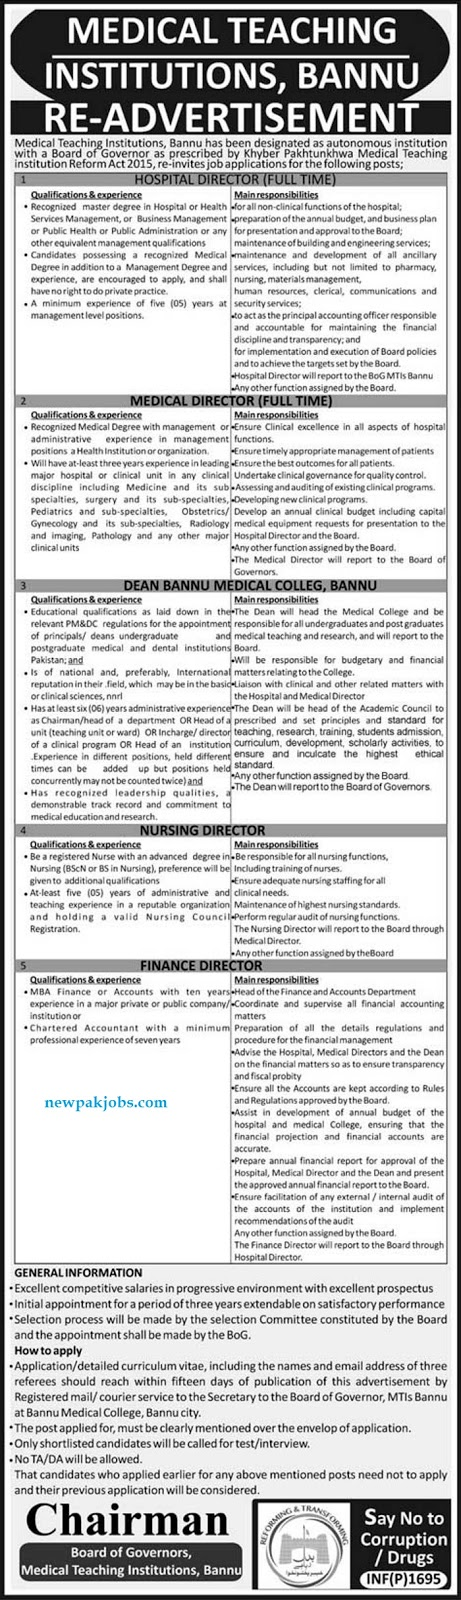 Readvertisement Of Medical Teaching Institutions Bannu April